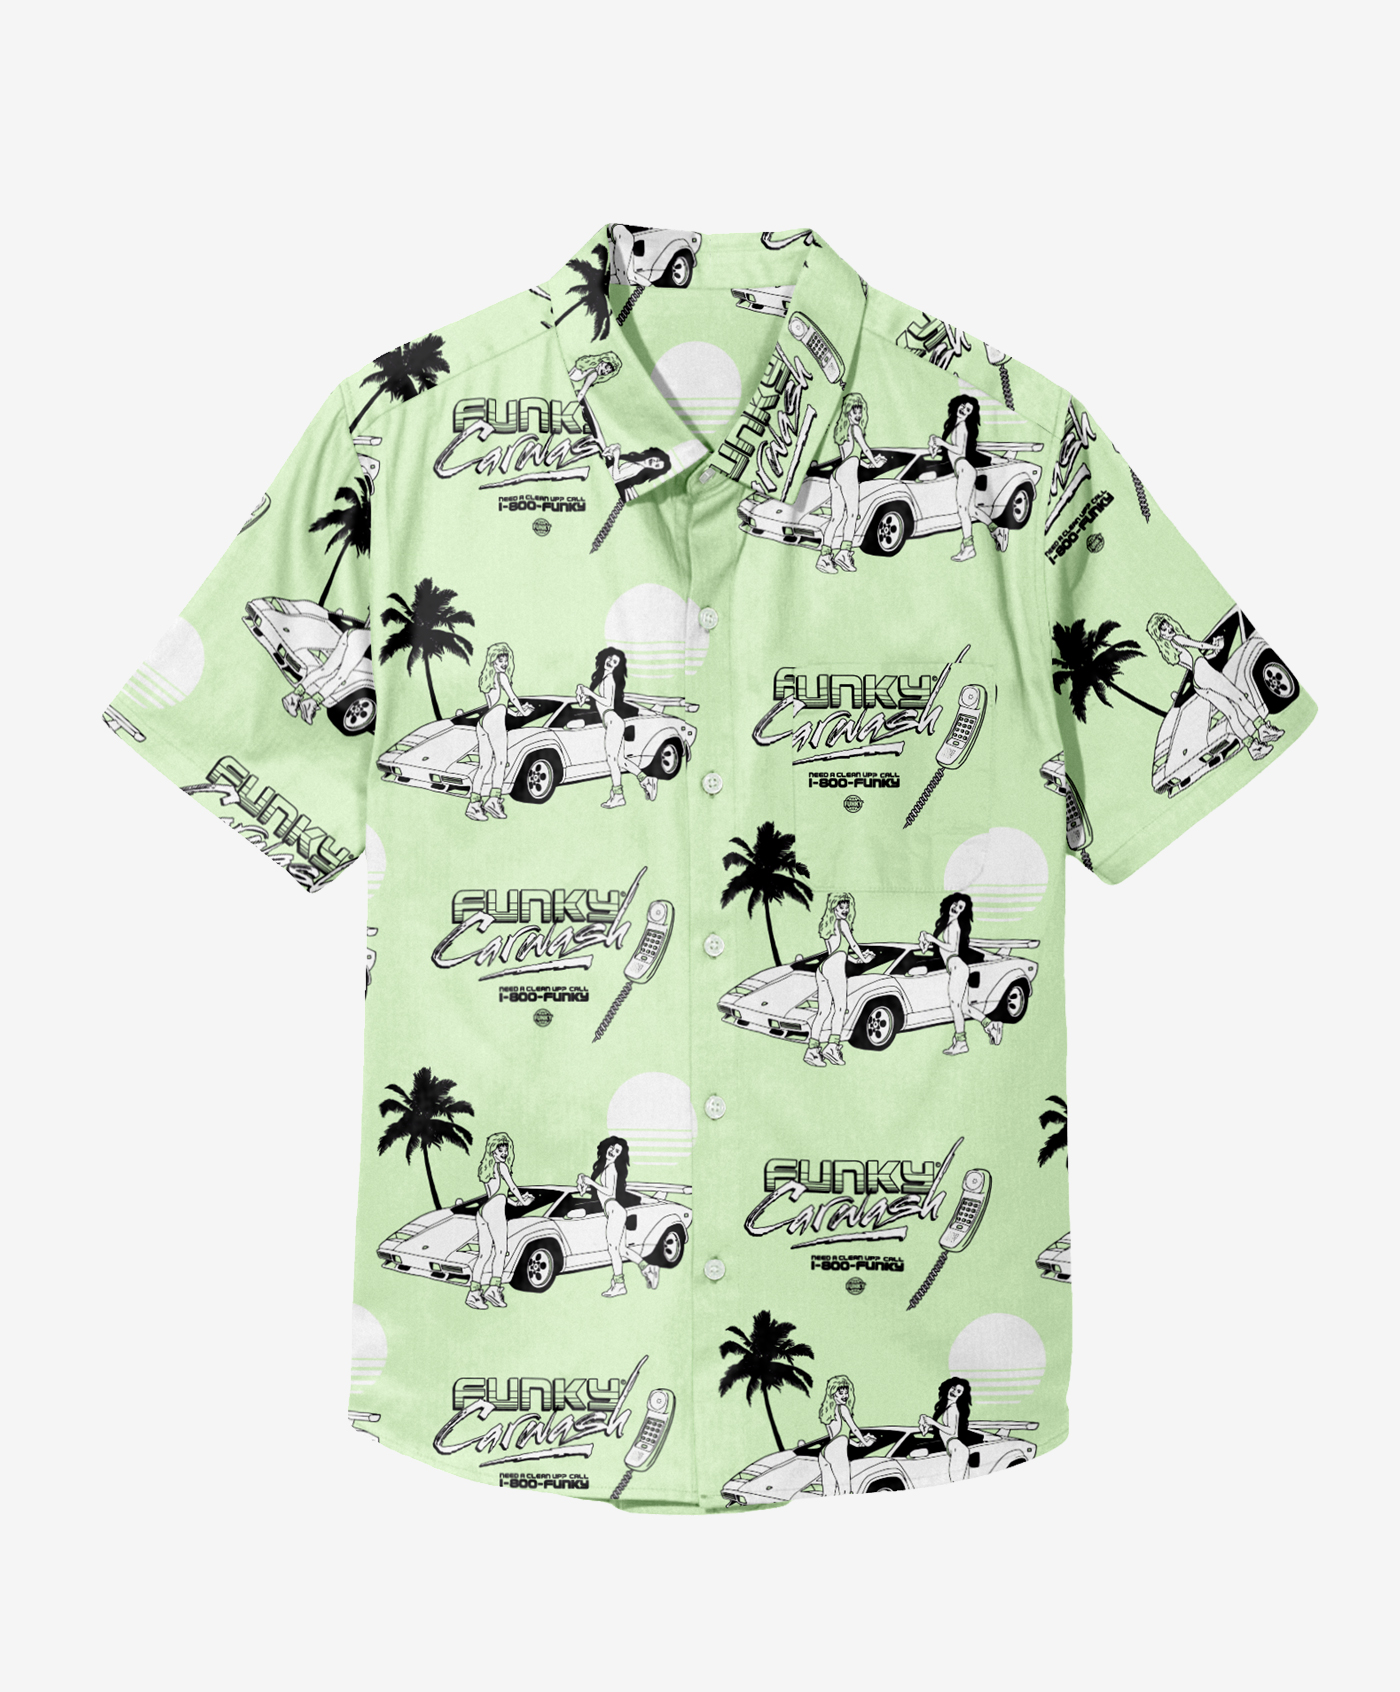 funky-carwash-shirt-mint